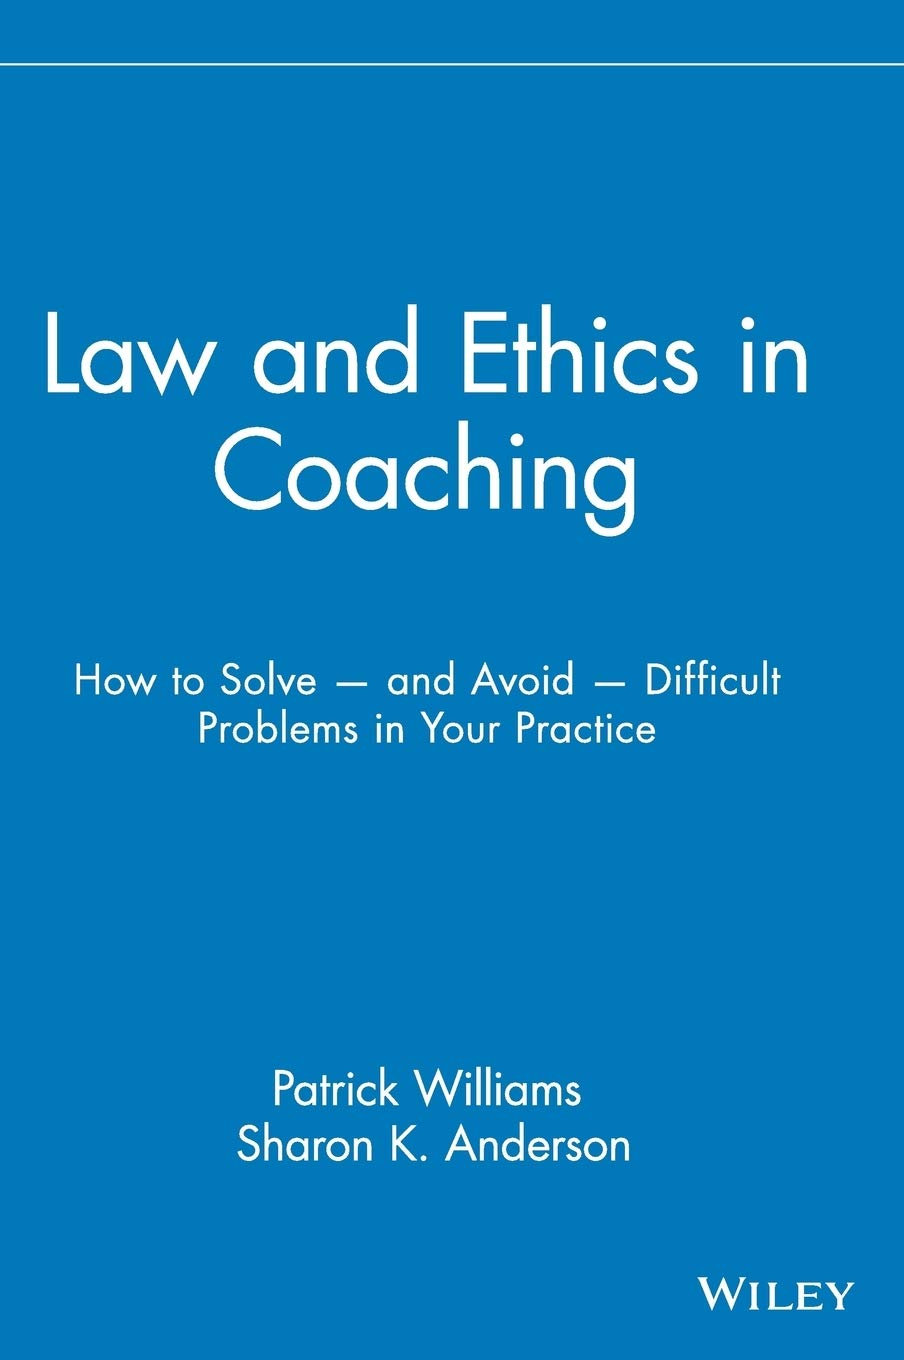 Download Ebook Law And Ethics In Coaching: How To Solve And Avoid Difficult Problems In Your Practice